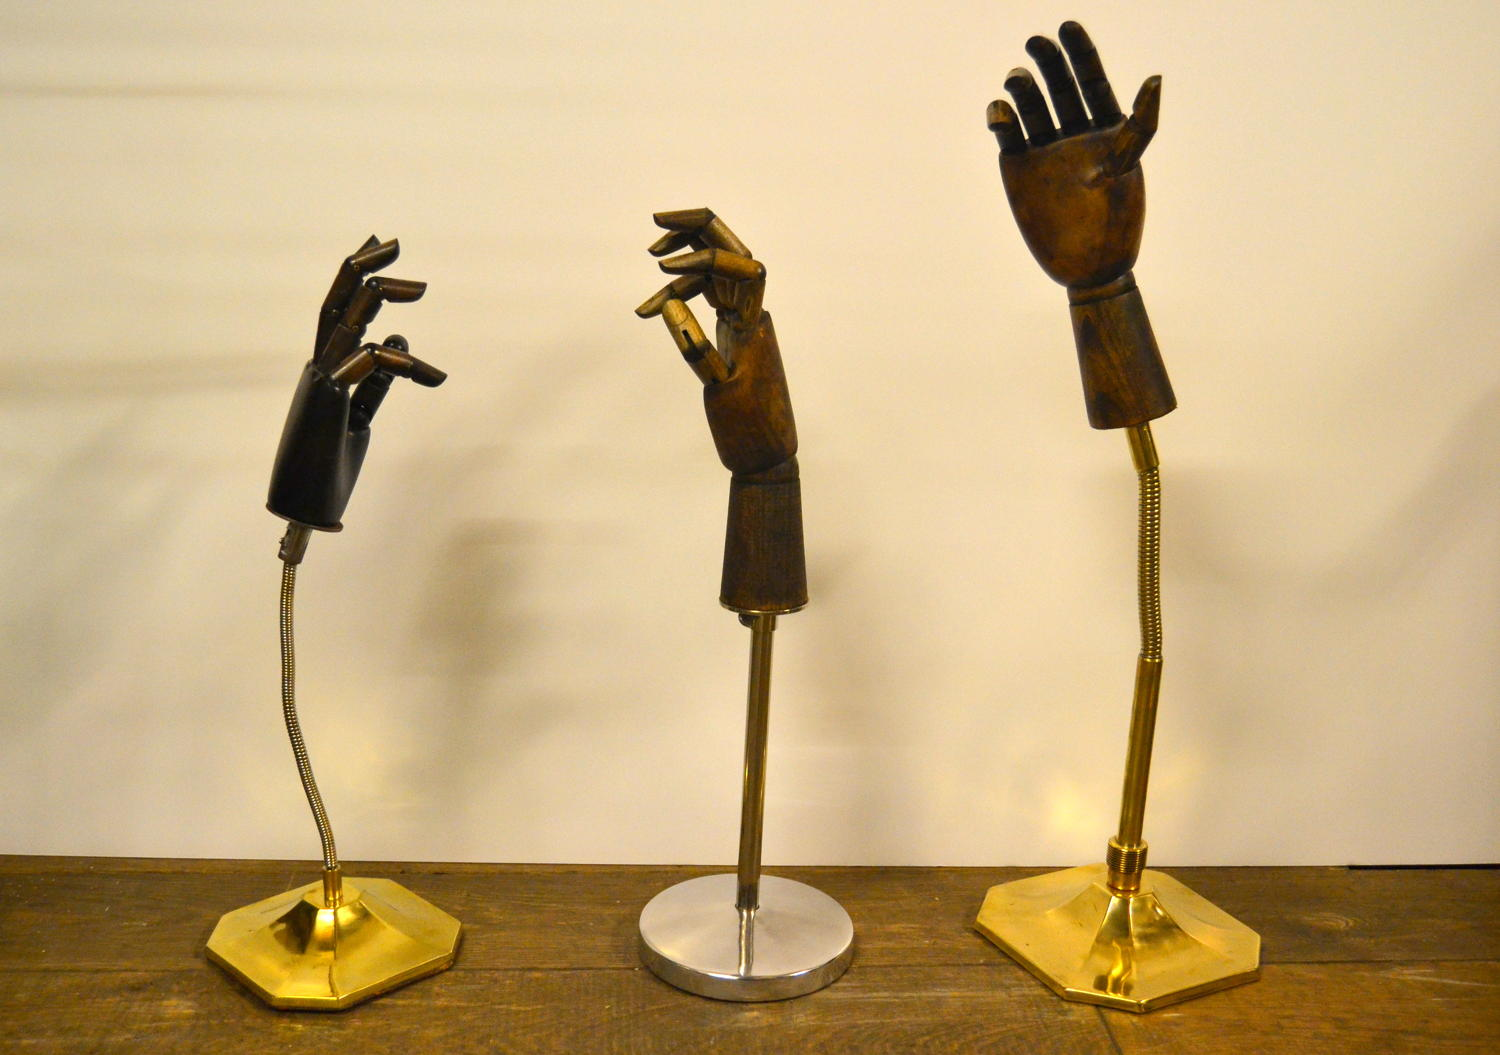 Adjustable Brass and Wooden Hands